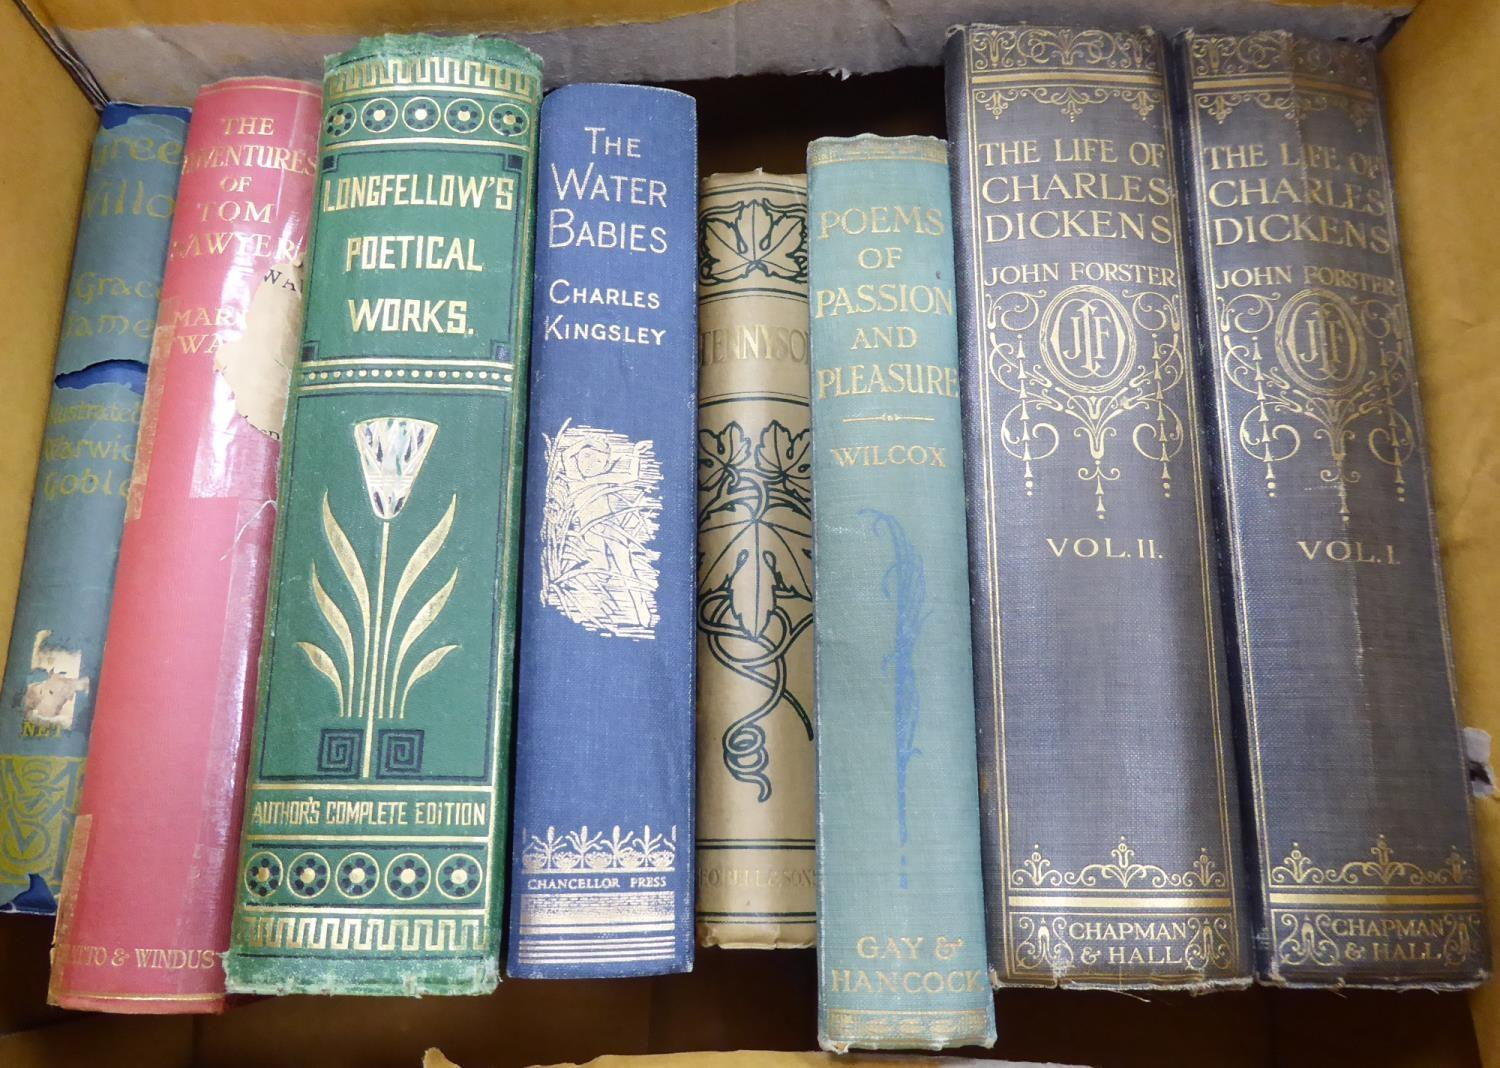 Lot 123 - WARWICK GOBEL - GREEN WILLOW JAPANESE FAIRY TALES by Grace James Macmillan 1812 with dust jacket